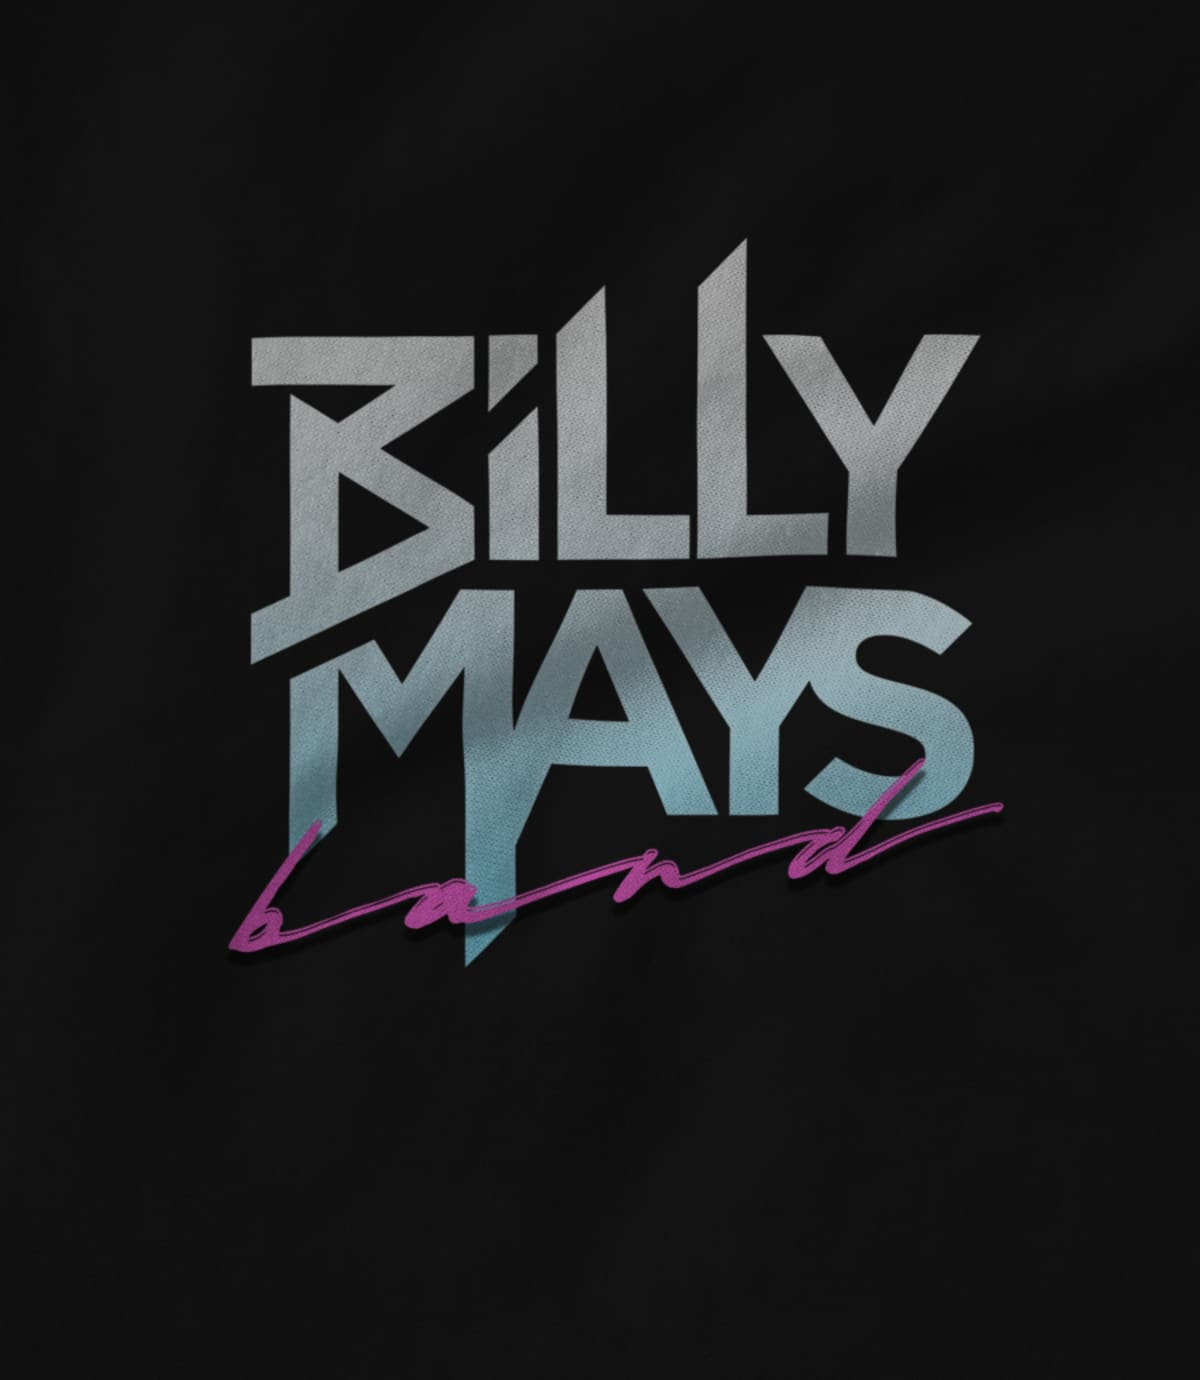 Billy Mays Band